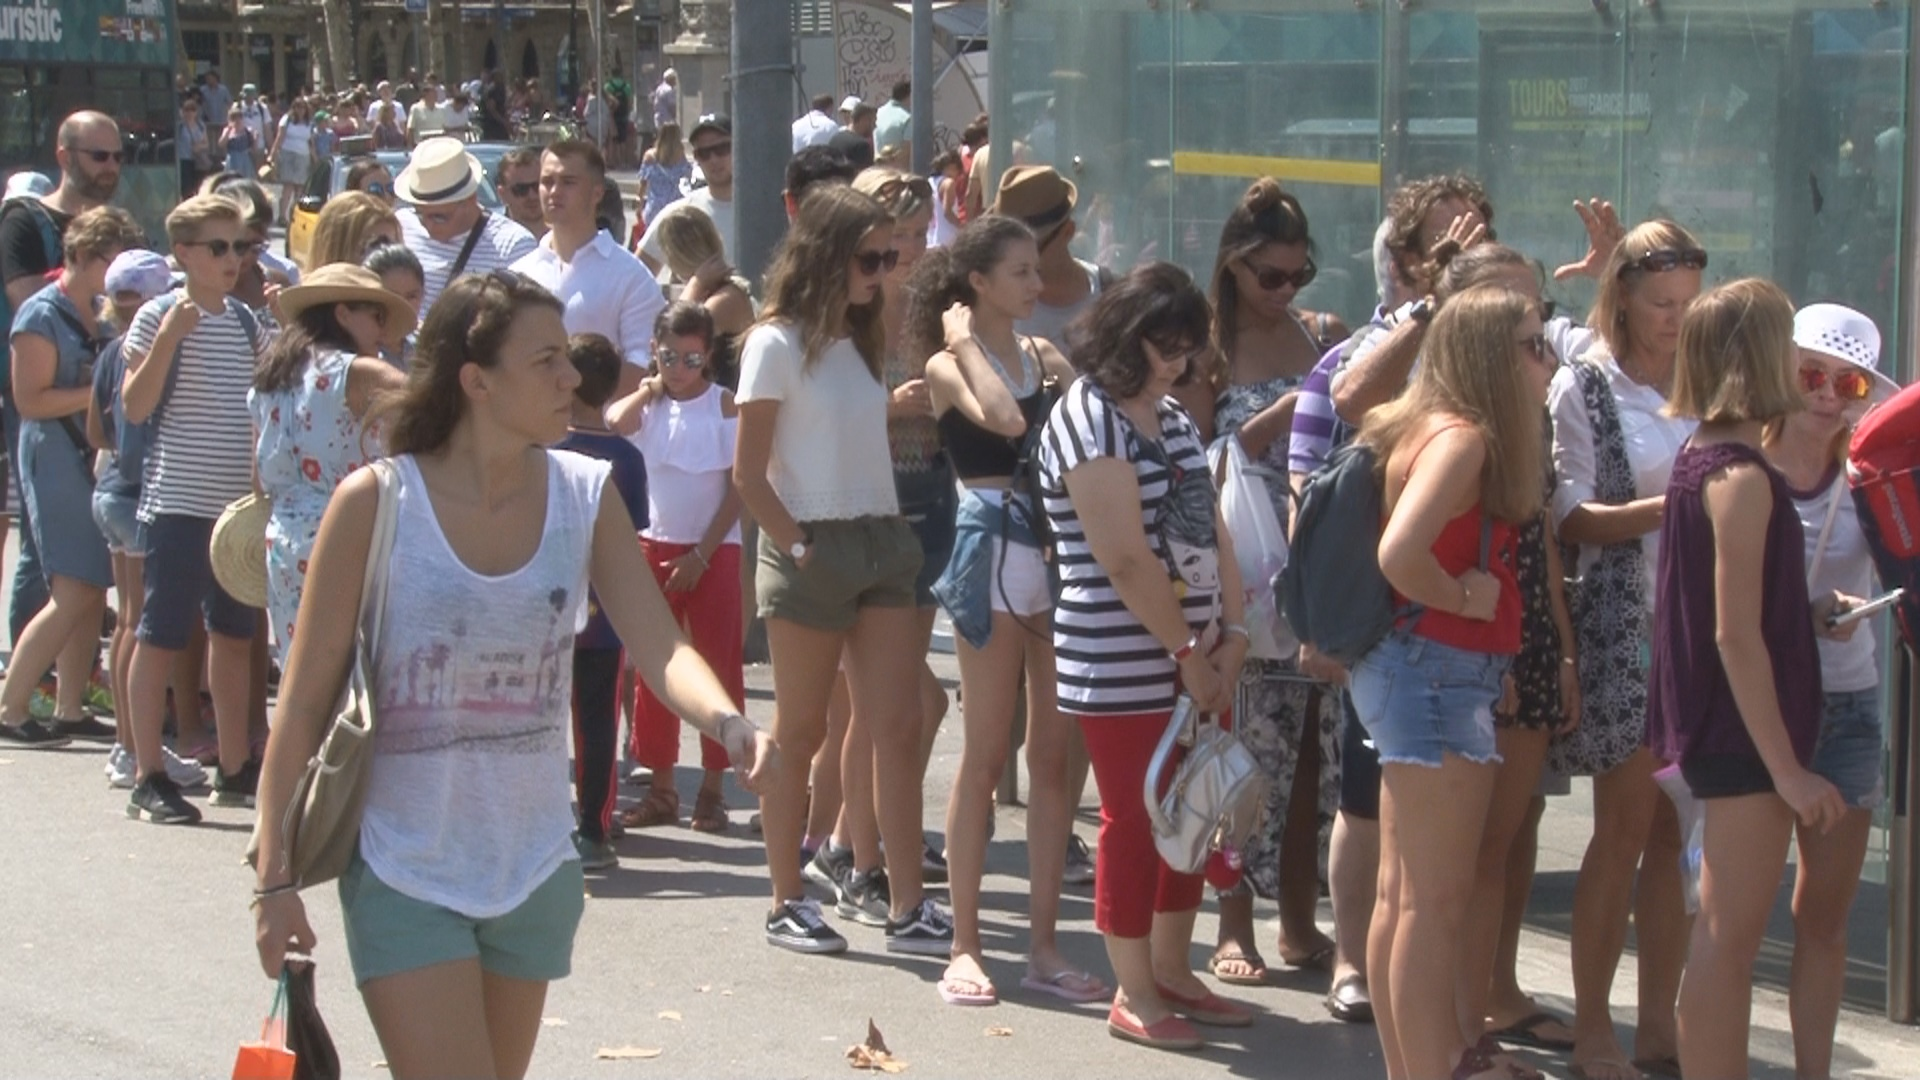 Tourism in Barcelona: why some locals think it is about to reach the tipping point